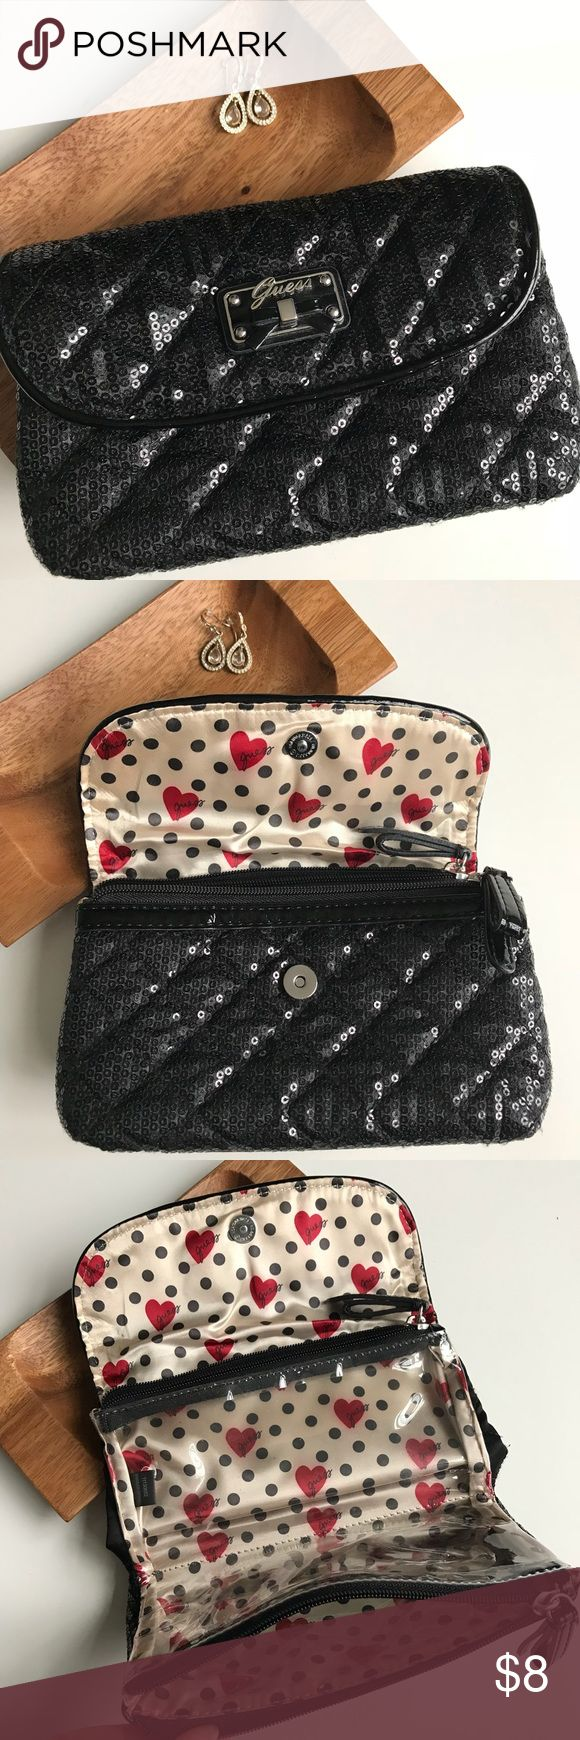 "🌿Guess Clutch Purse Black sequined Guess clutch with 2 clear, zippered,  interior pouches. Lined with fun fabric while the exterior is a cushioned quilted feel. Used twice, in excellent condition.   •8"" long.         • 4.25"" tall,   •2.75"" deep. Guess Bags Clutches & Wristlets"